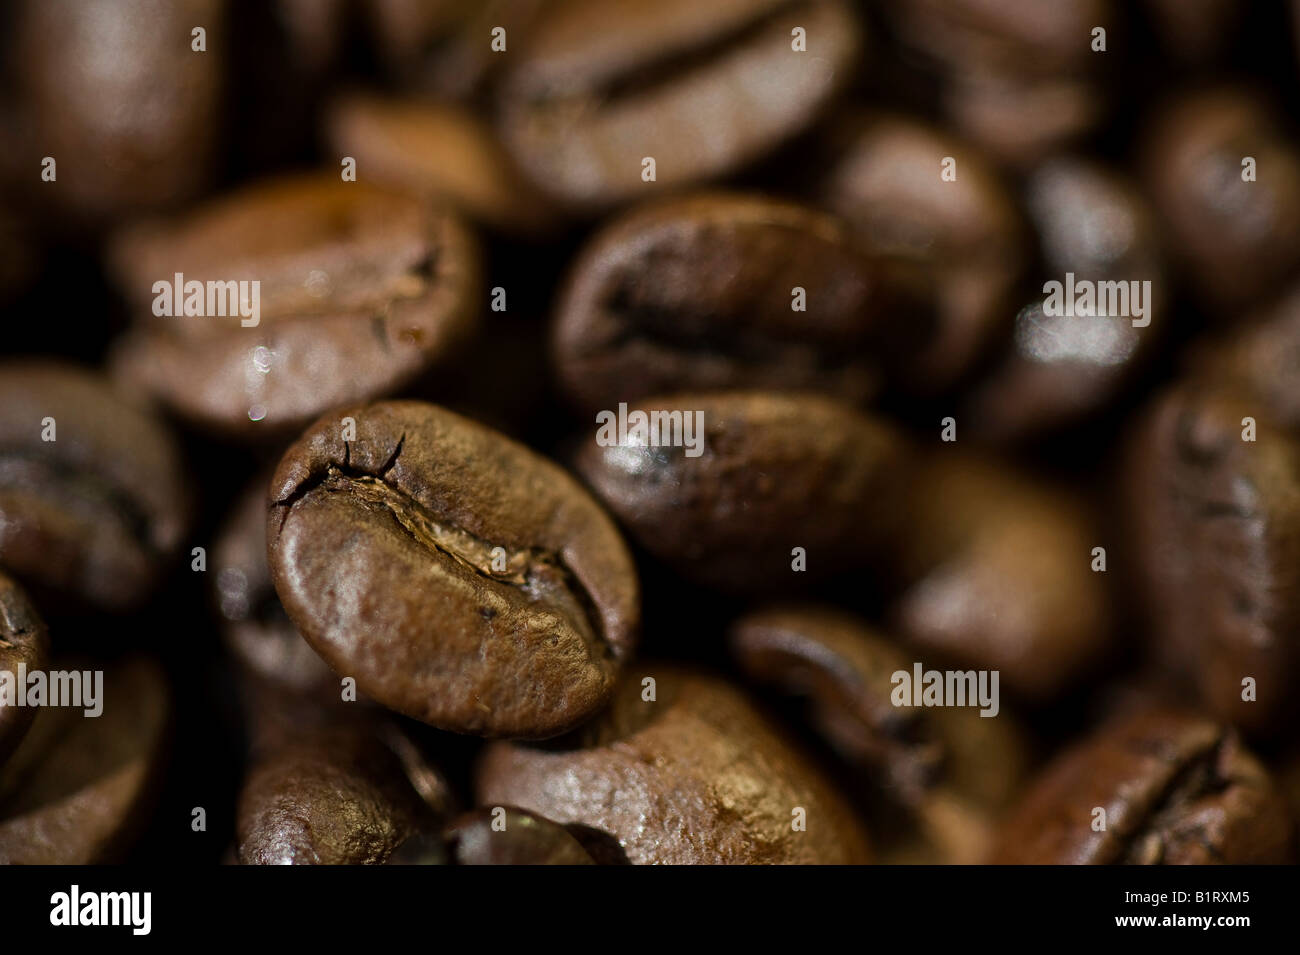 Coffee beans - Stock Image